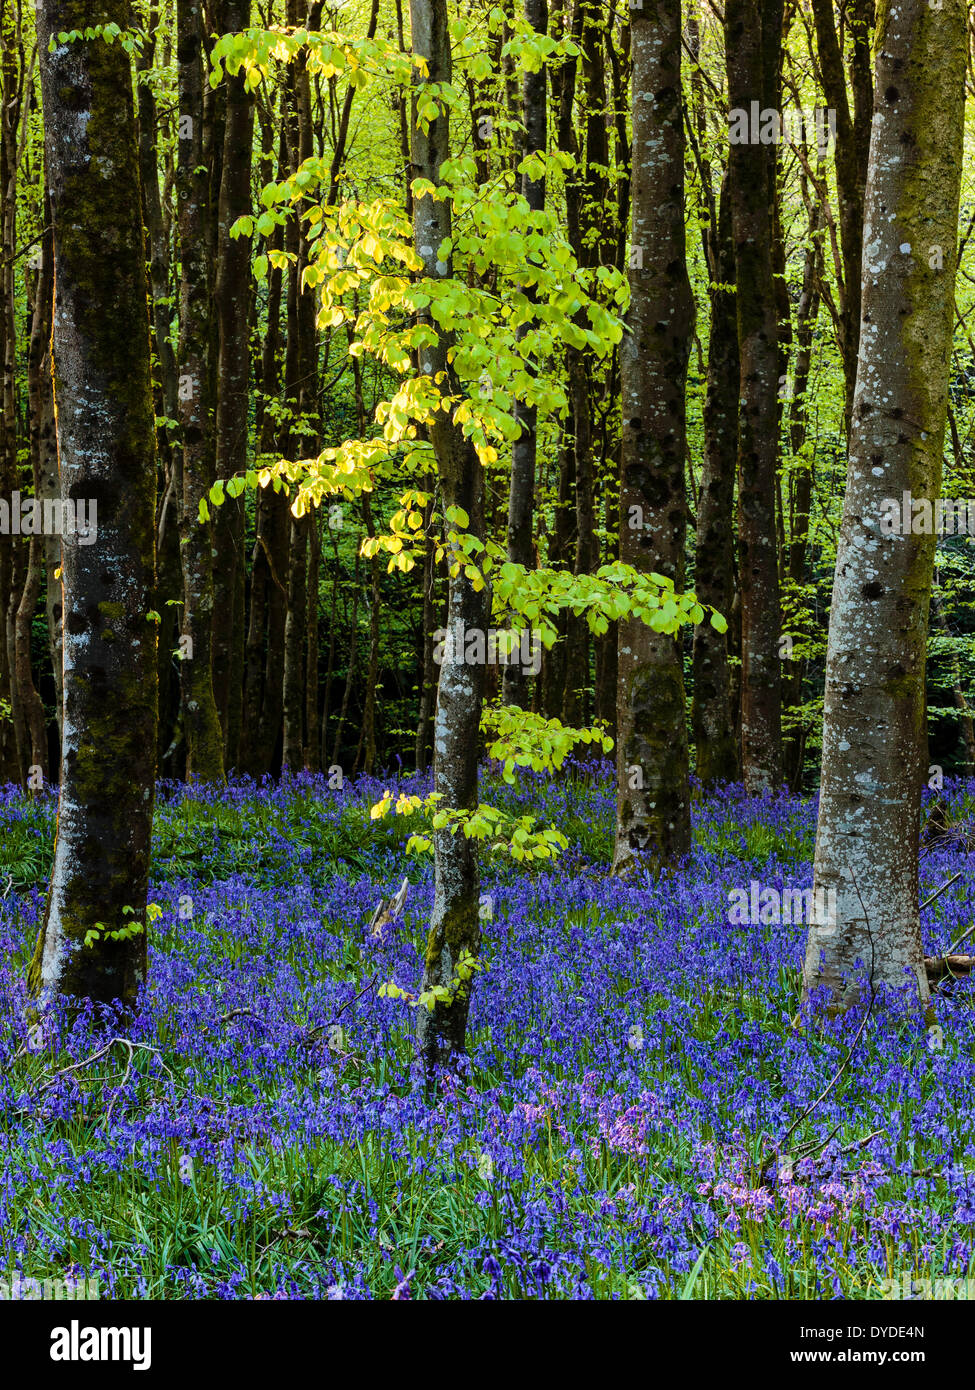 Bluebells amongst beech trees in Hooke Park in Dorset. - Stock Image